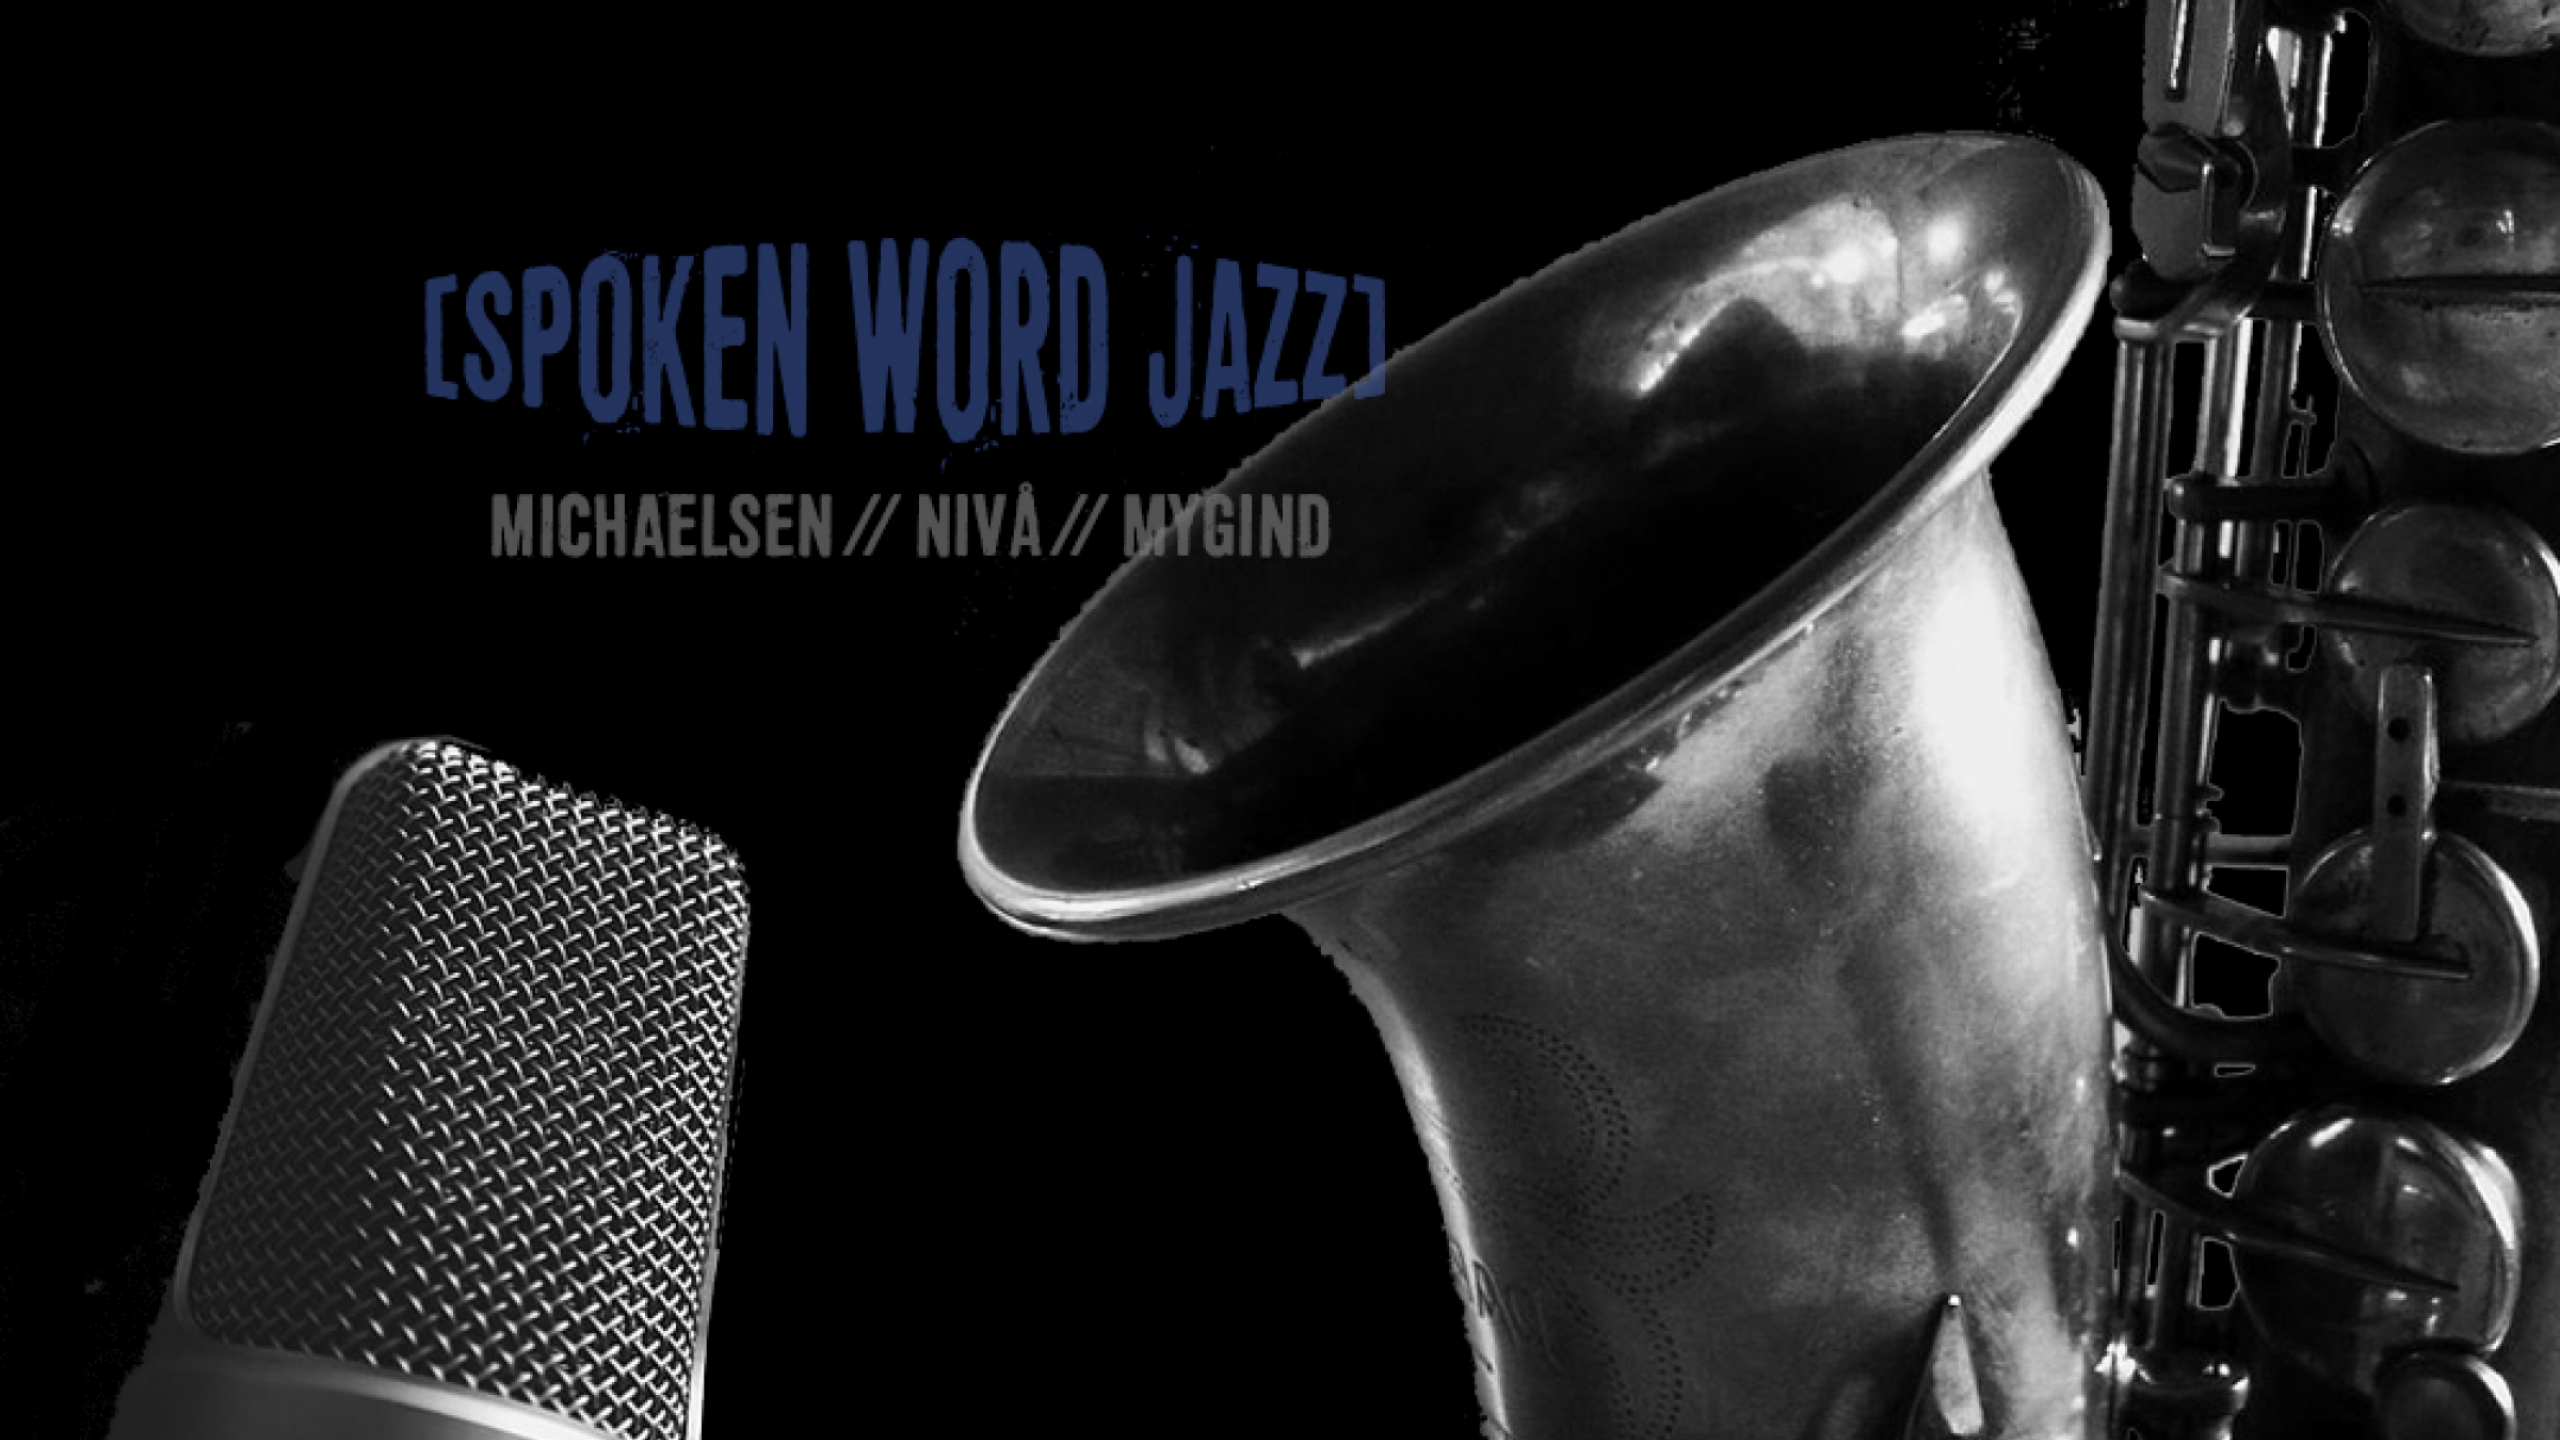 spoken_word_jazz